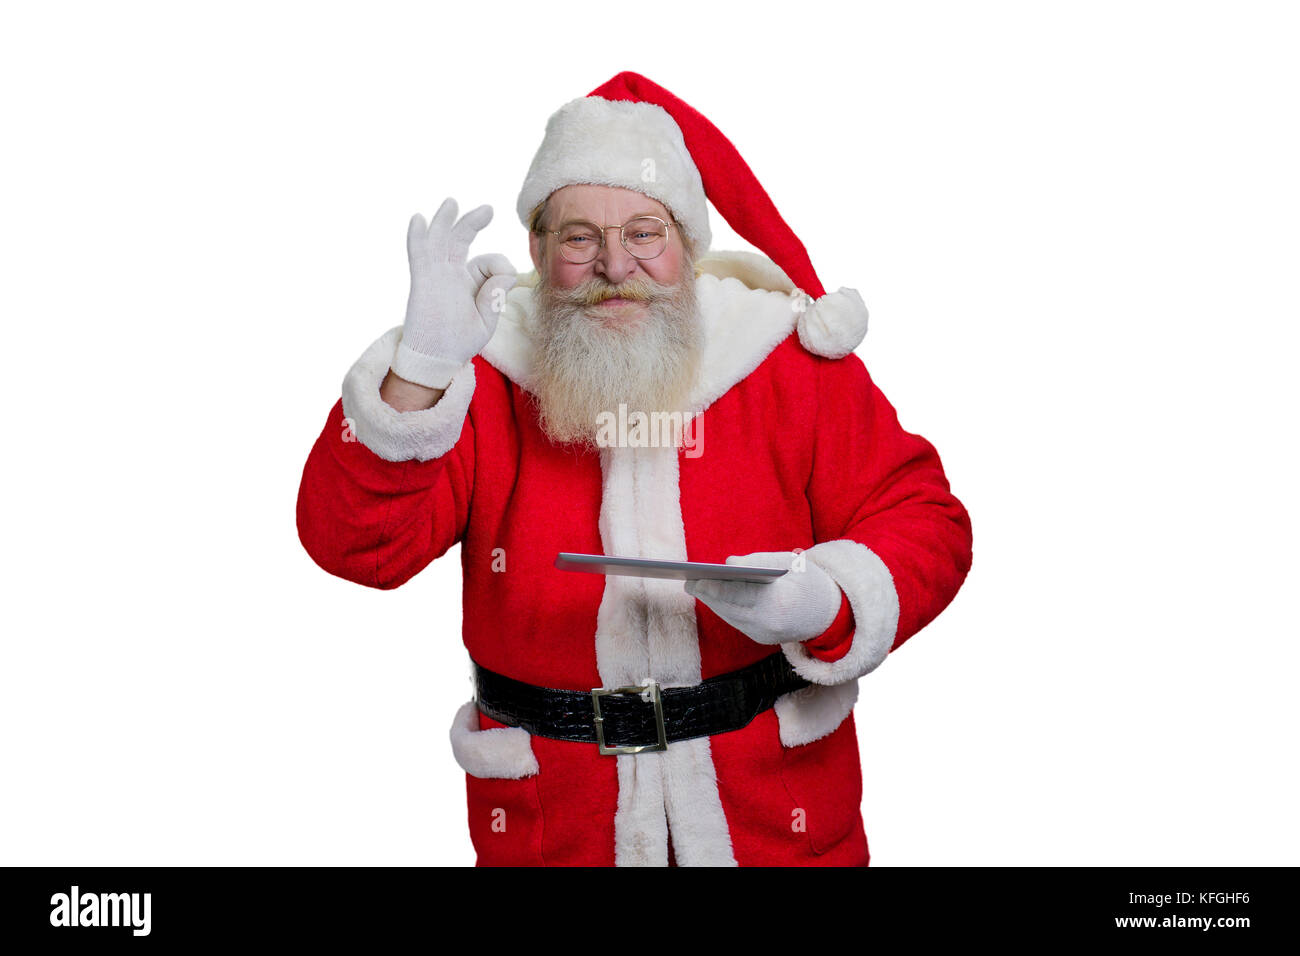 Santa Claus with digital tablet. Senior Santa Claus is realizing kids wishes making a magic on white background. - Stock Image